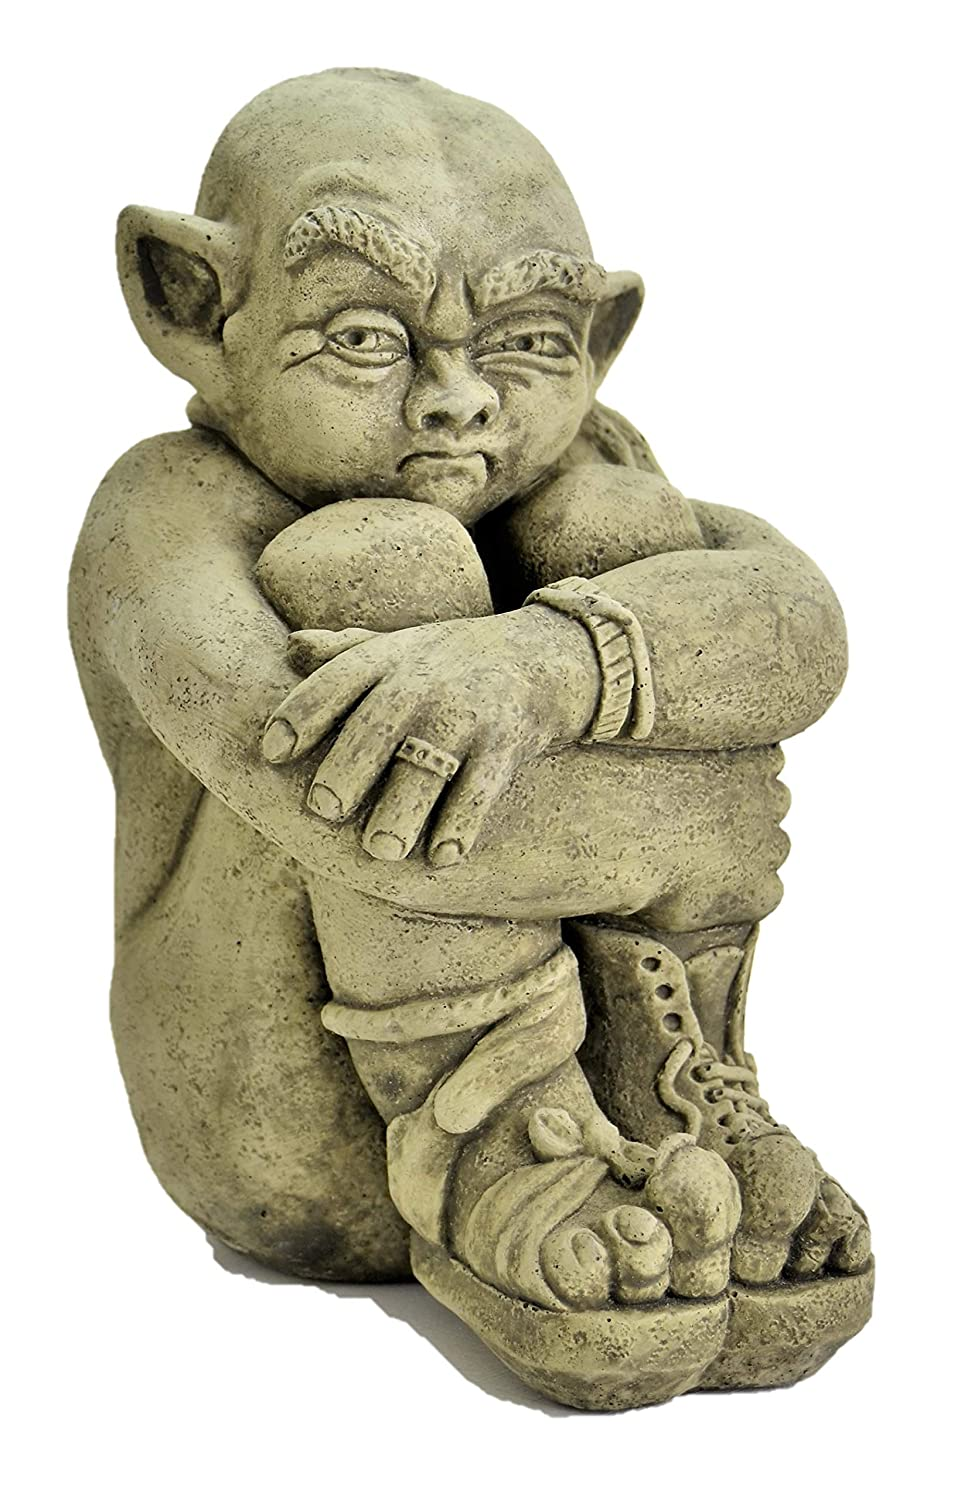 Hugo-Garden Ornament-Gargoyle-Sculpture Stone Statue-Home Patio-Decorative Gift